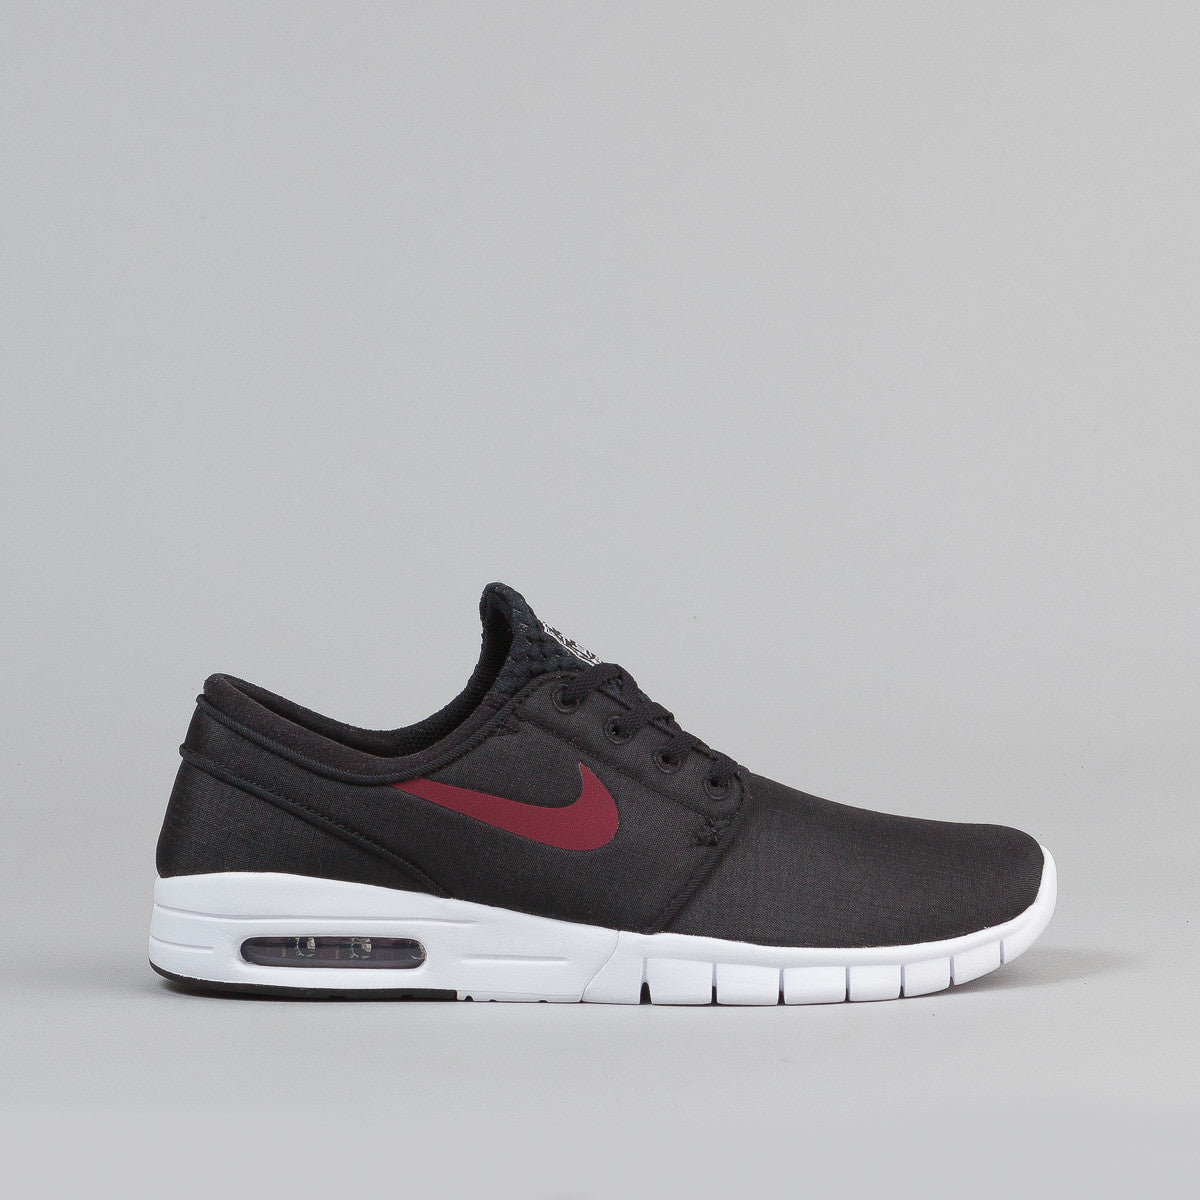 nike sb stefan janoski max shoes black team red. Black Bedroom Furniture Sets. Home Design Ideas